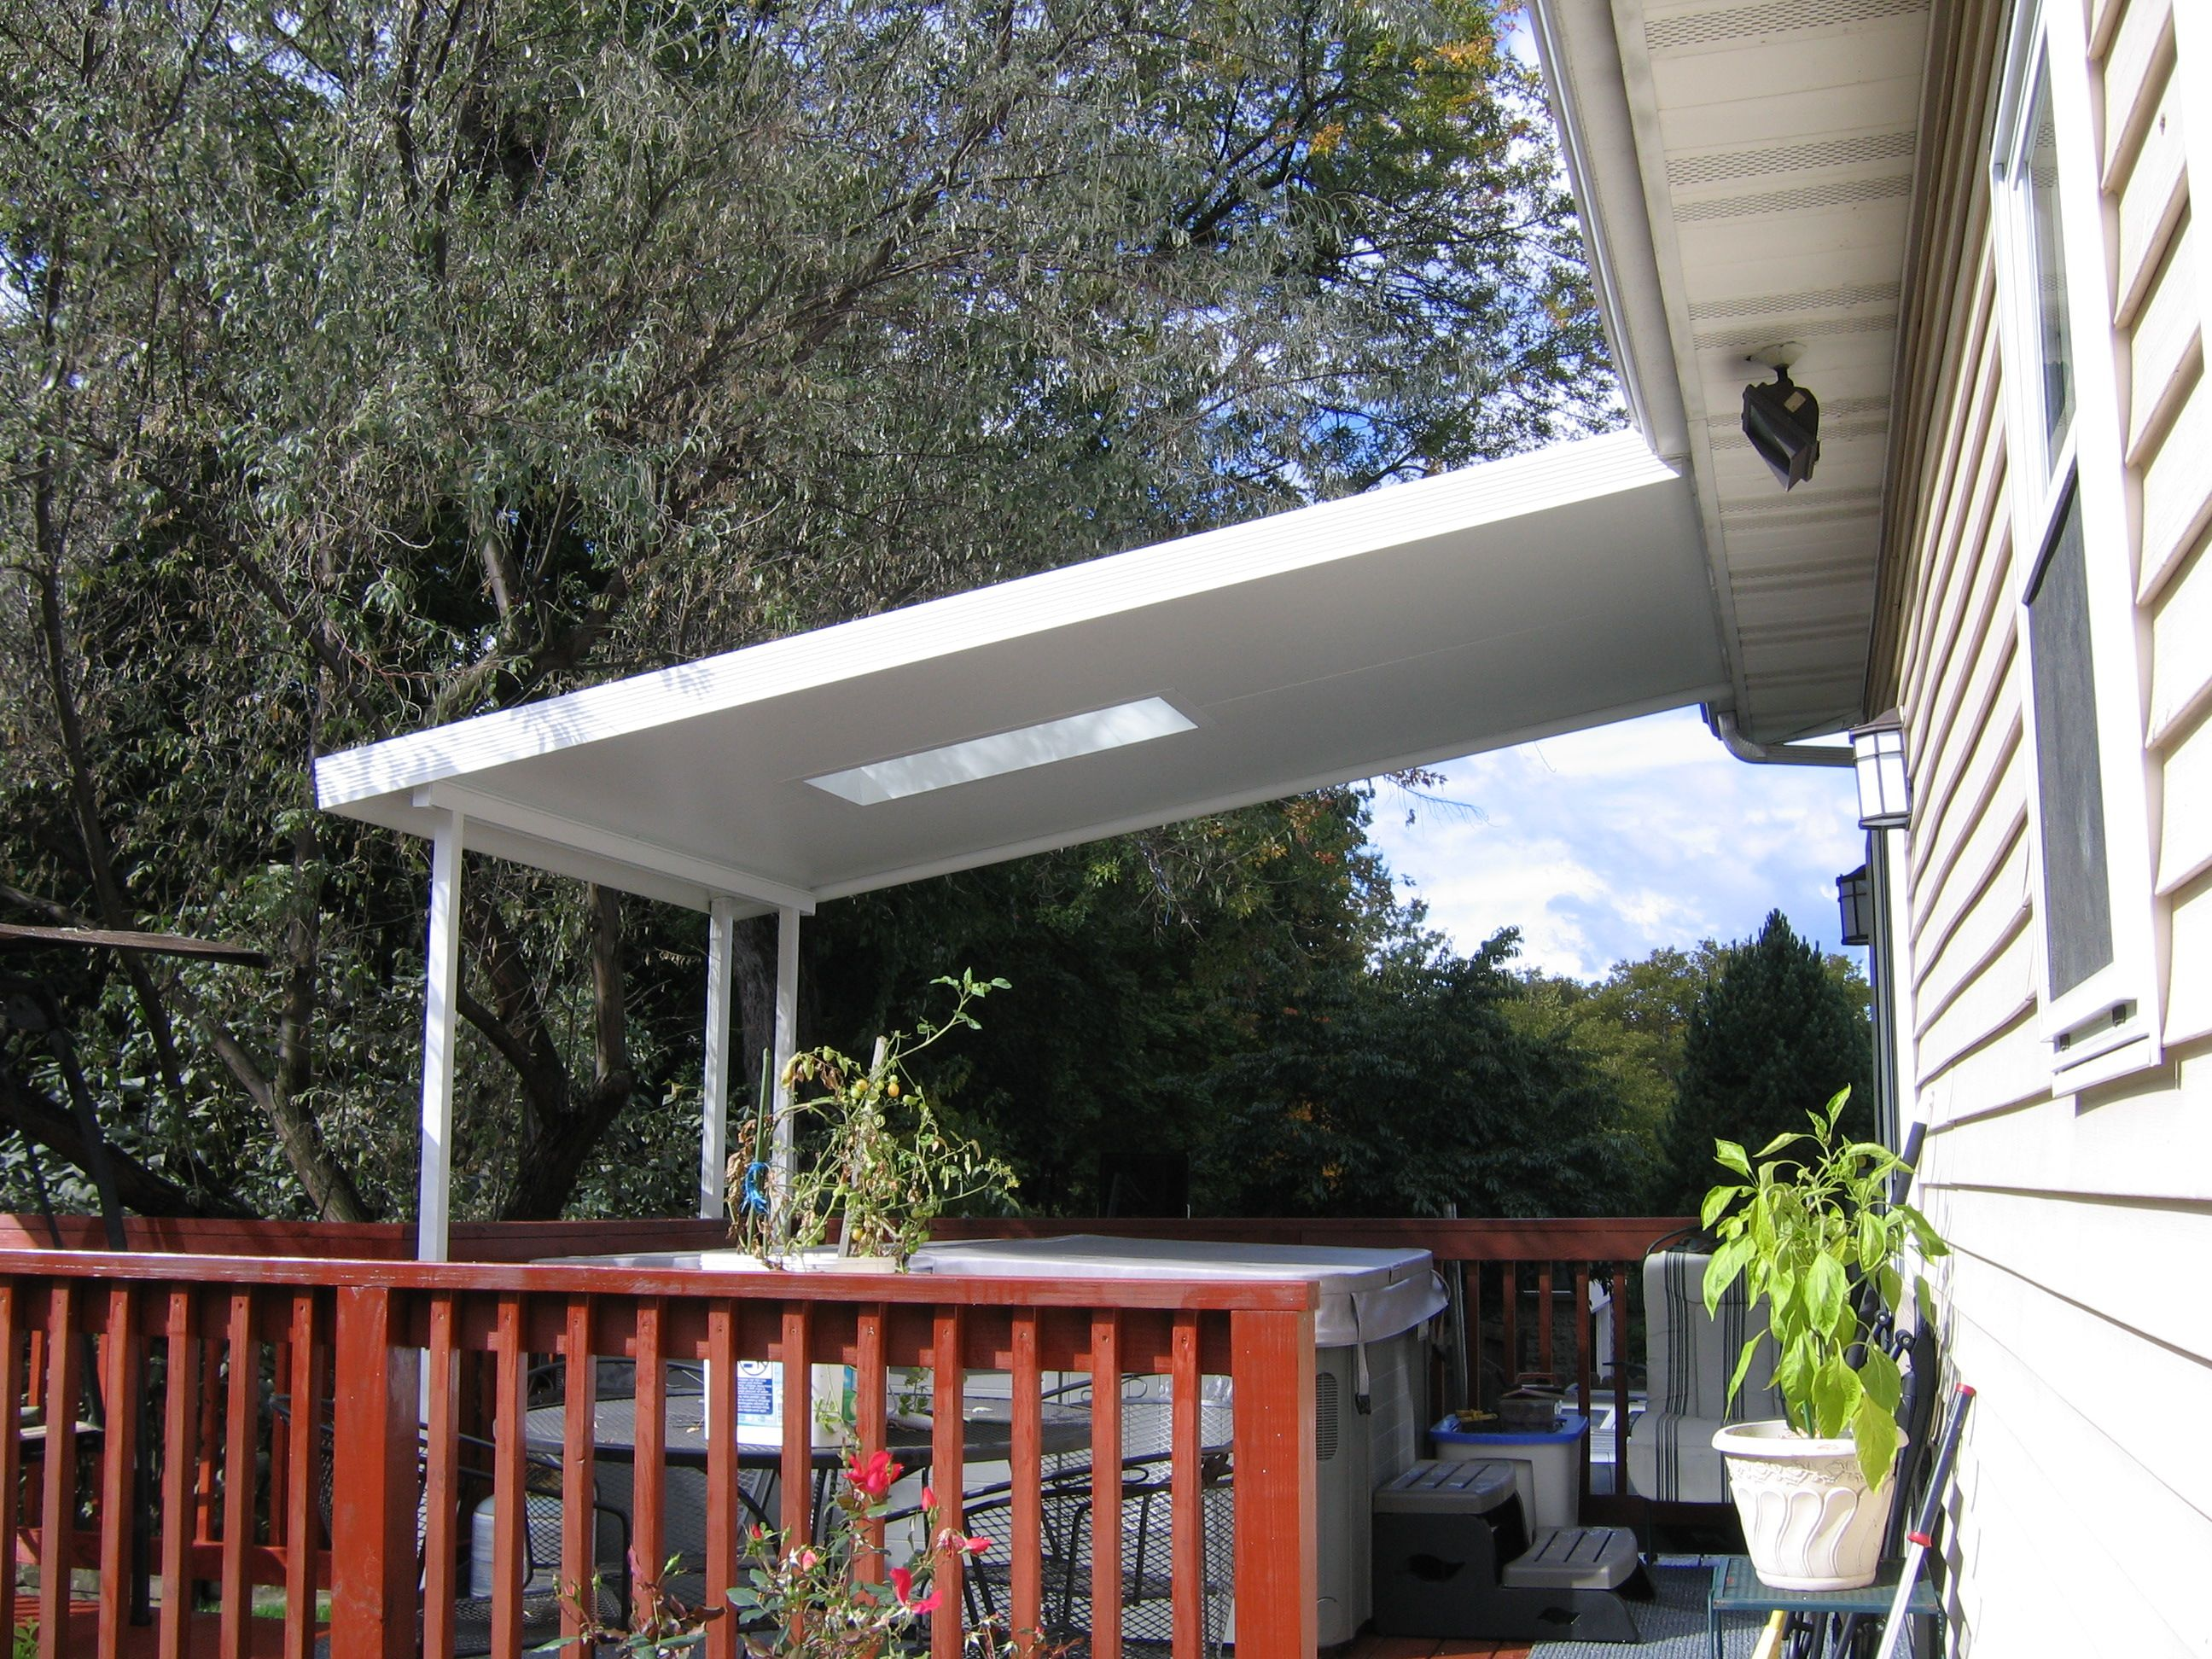 sunday awnings week a at ave disposition estimates retractable accesskeyid brooklyn your ny home classon hours free available monday alloworigin days pm roll carports awning estimate am up